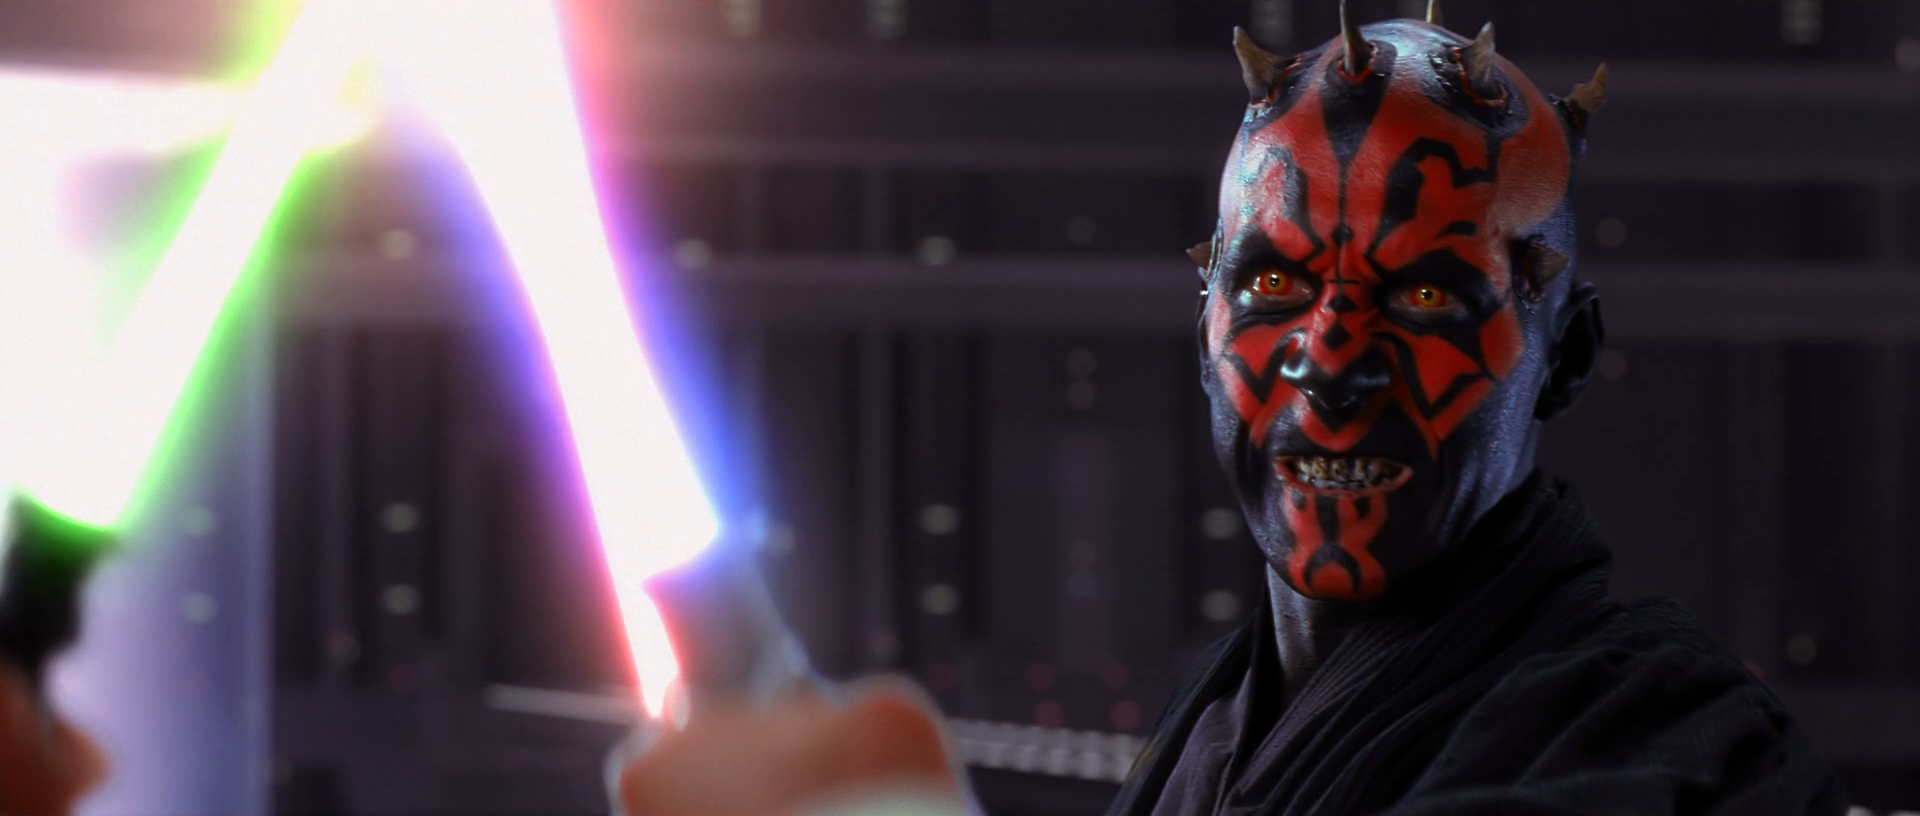 maul_snarl.png